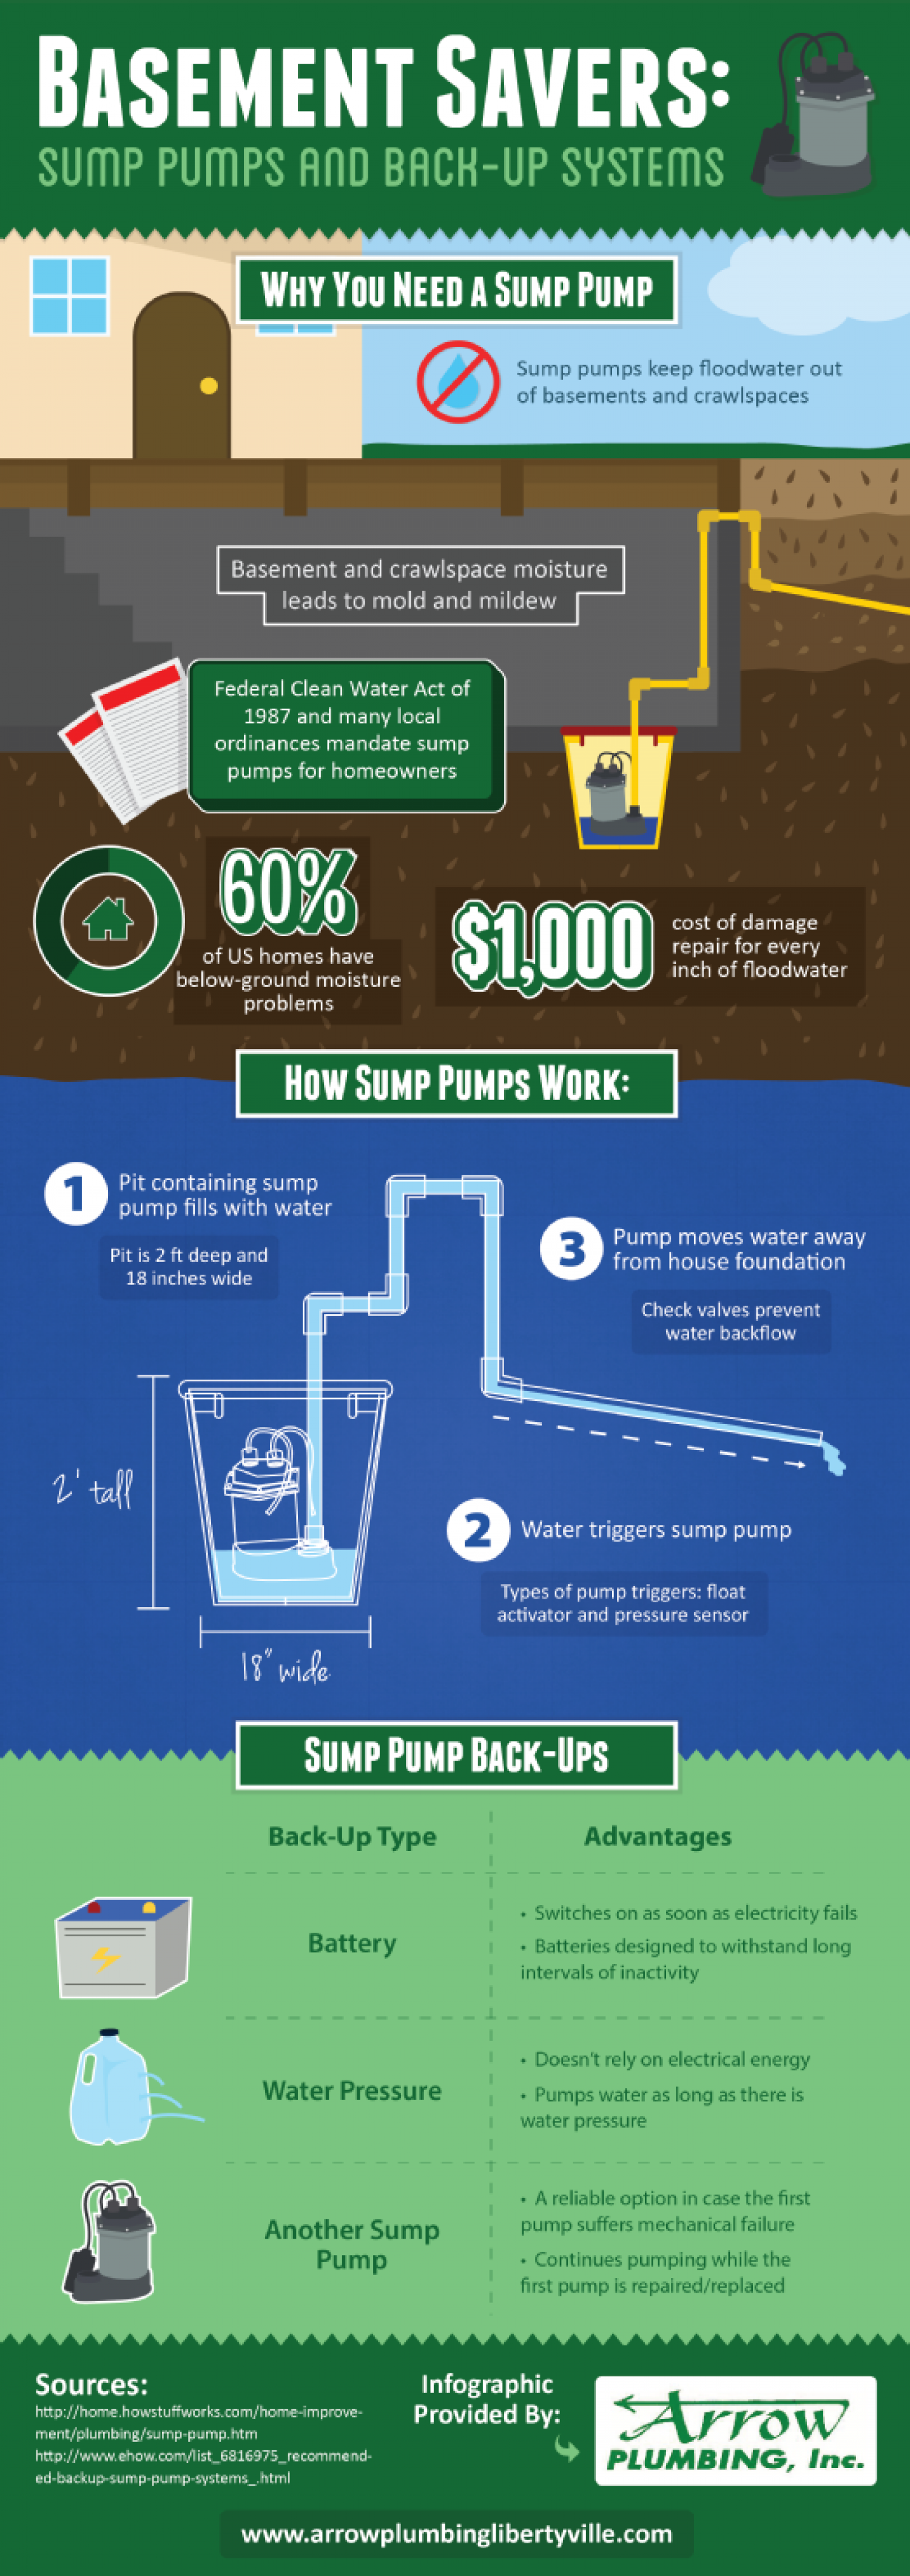 Basement Savers: Sump Pumps and Back-Up Systems Infographic